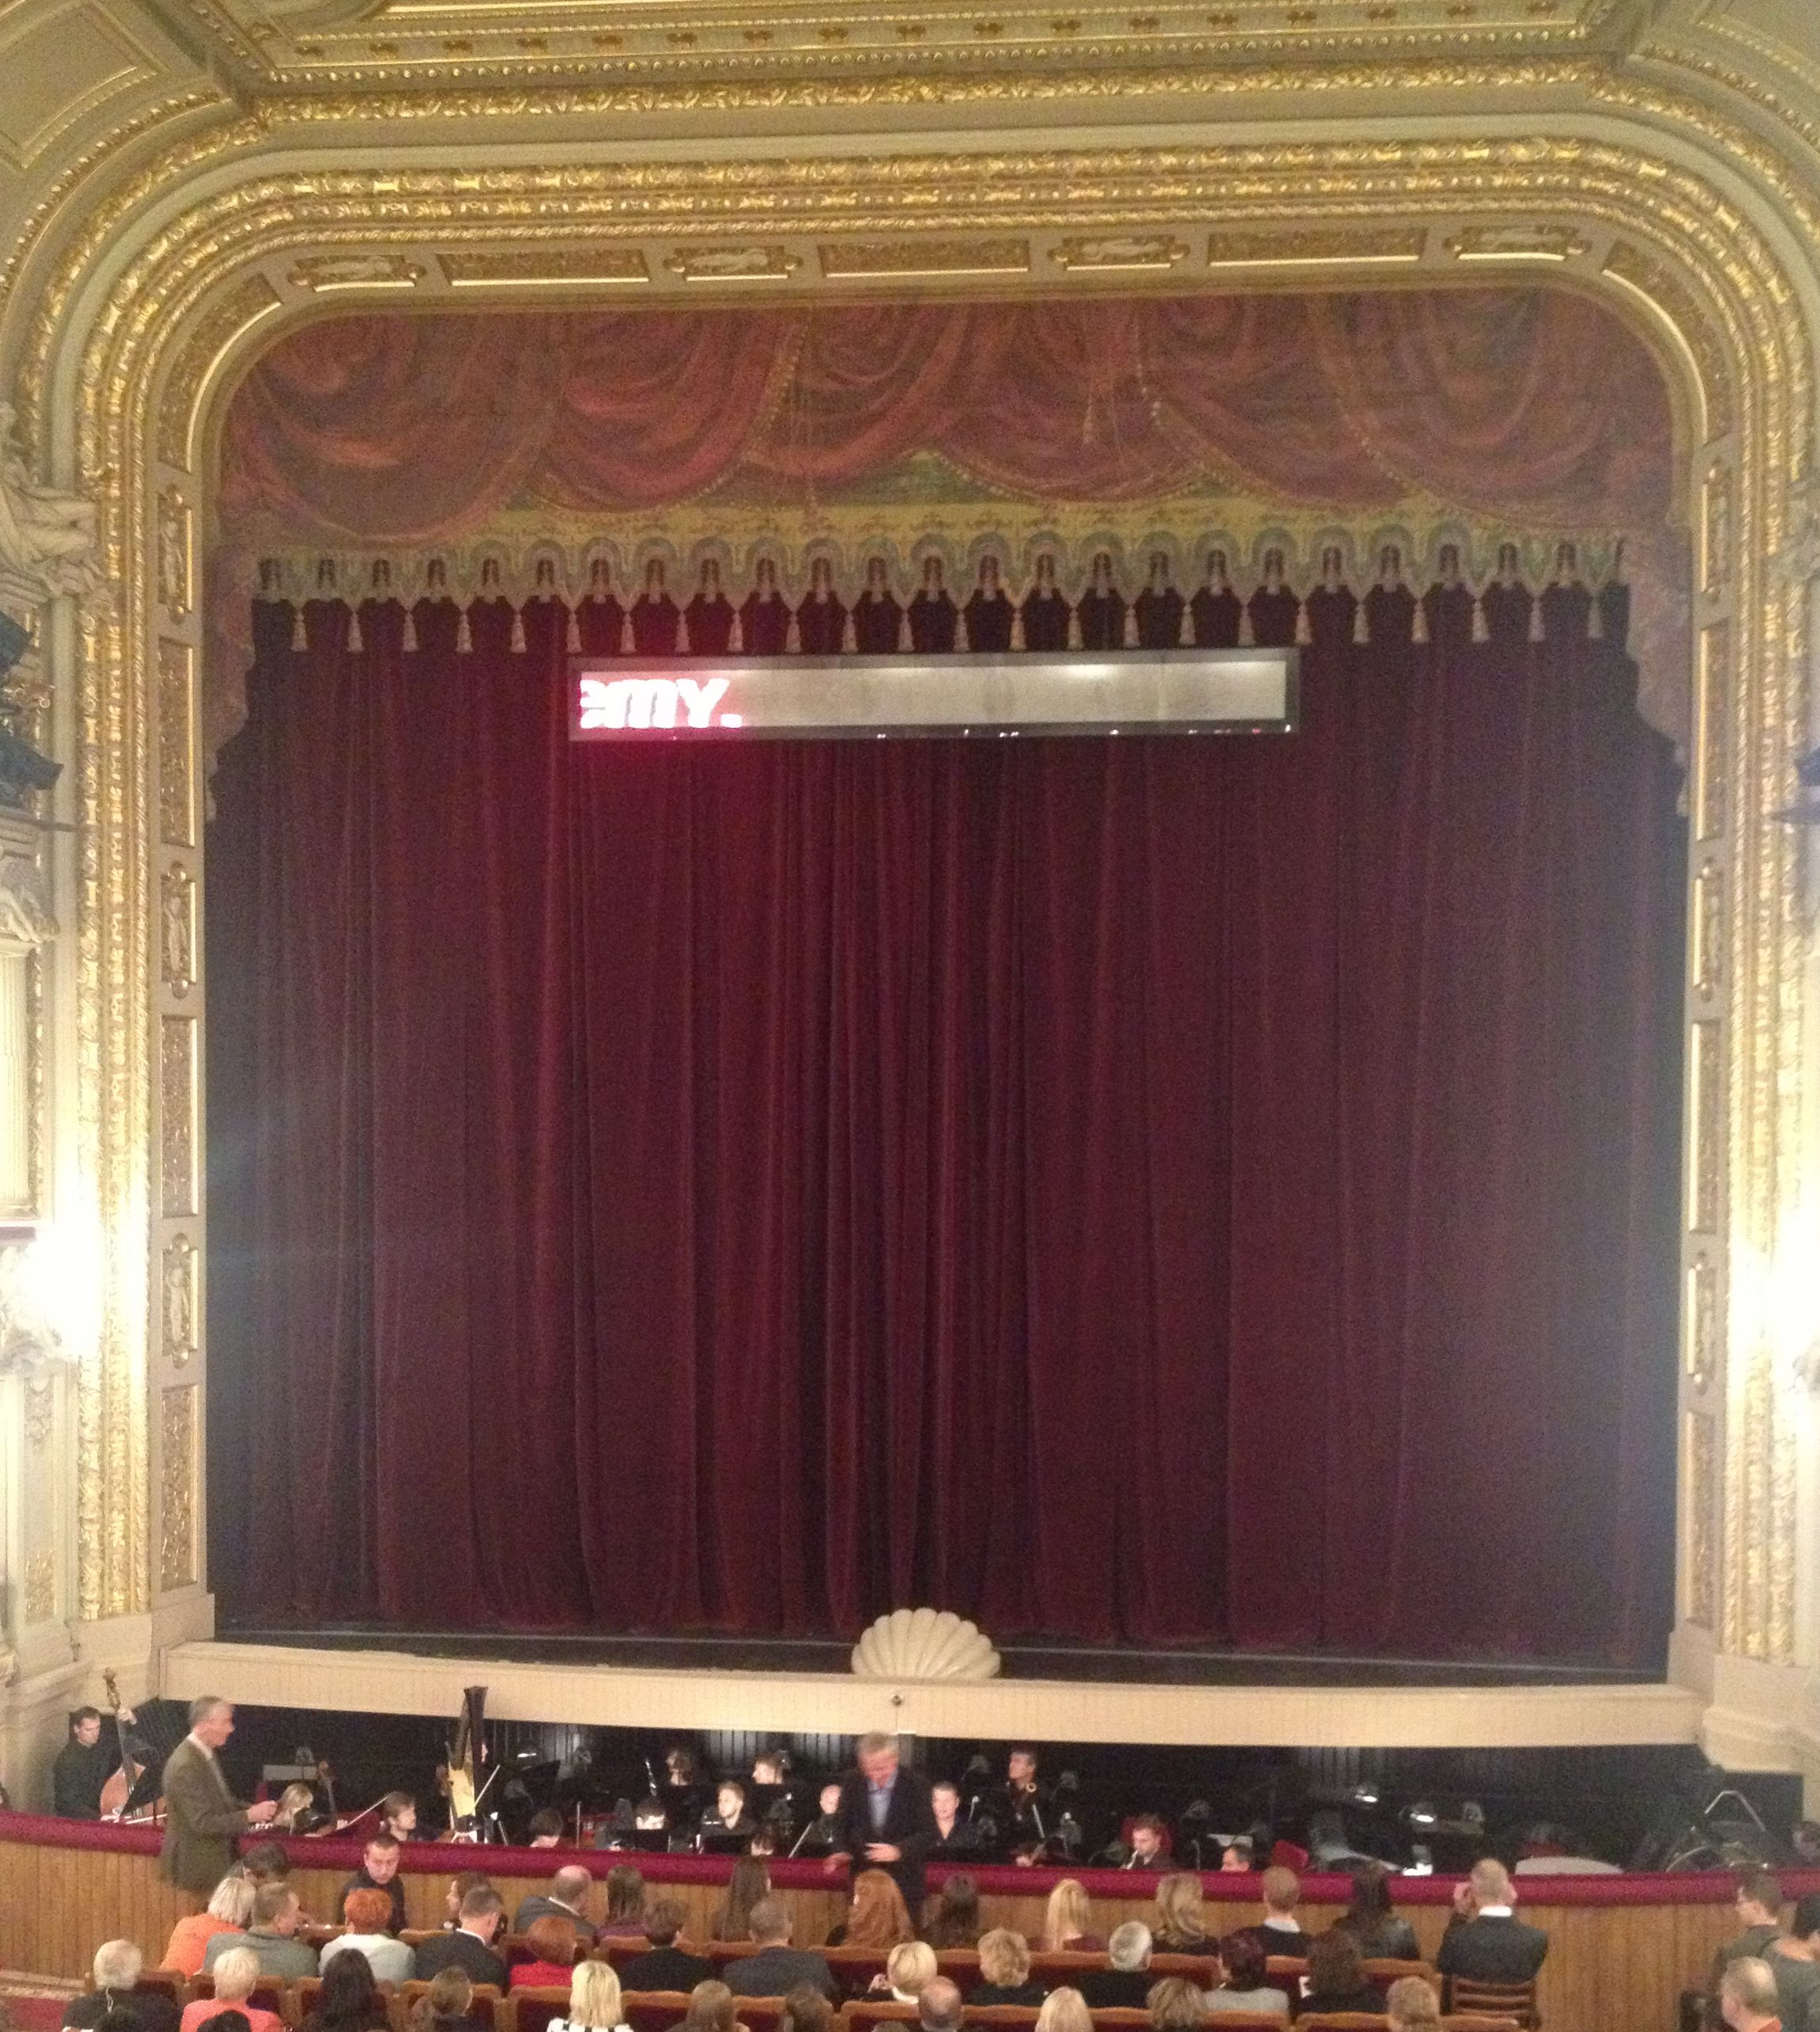 In der Lemberger Oper